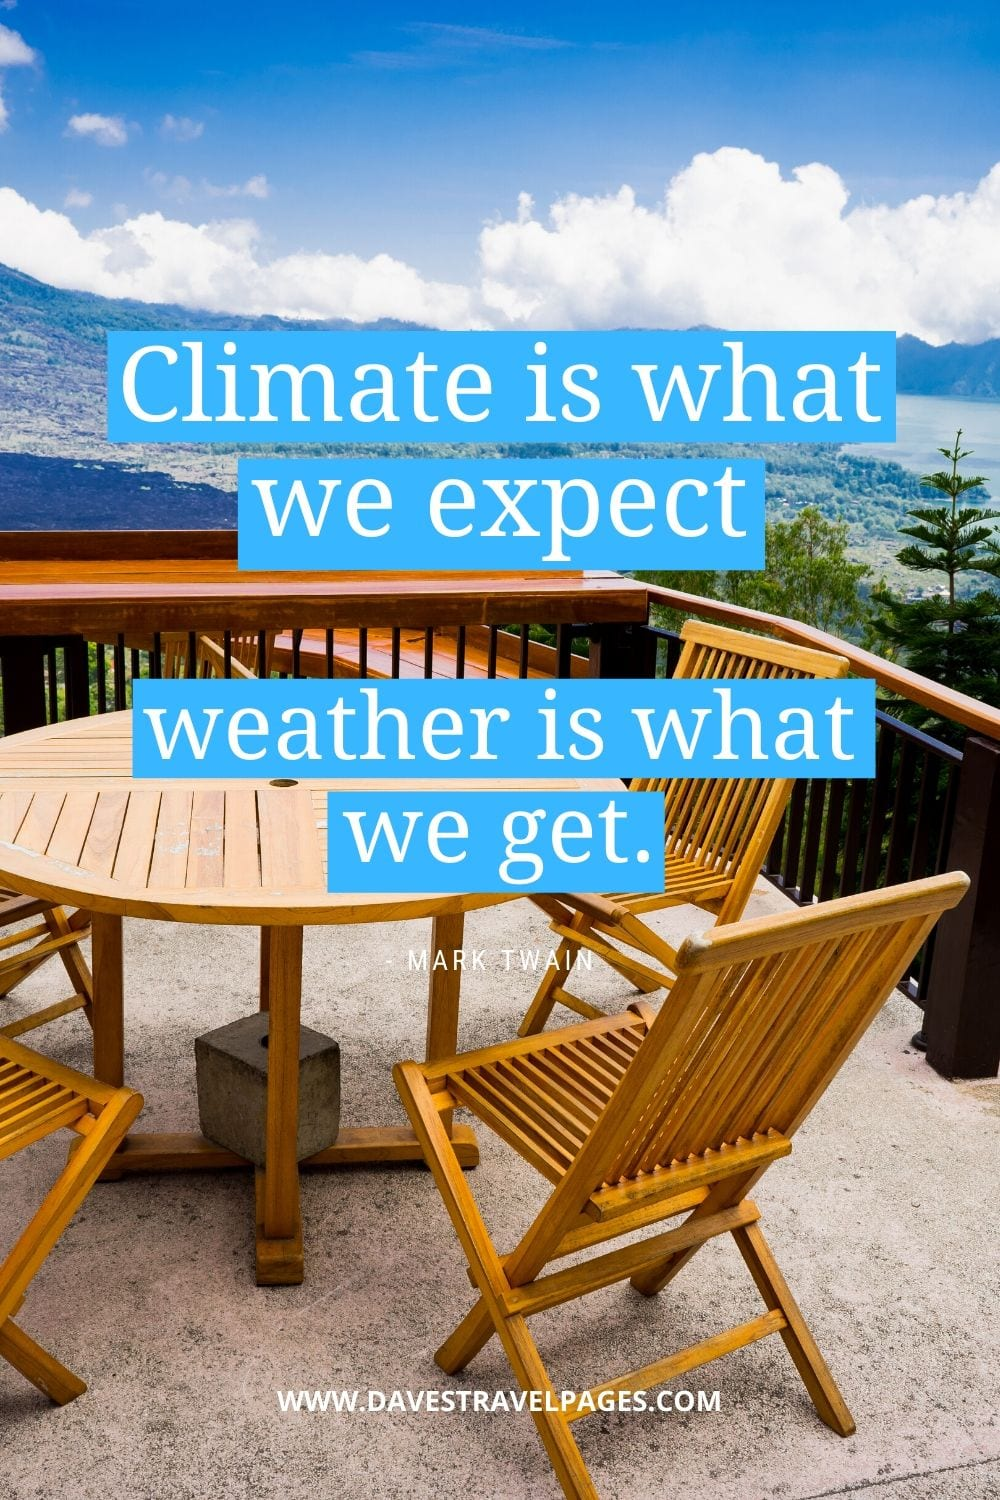 Quotes by Mark Twain: Climate is what we expect, weather is what we get.